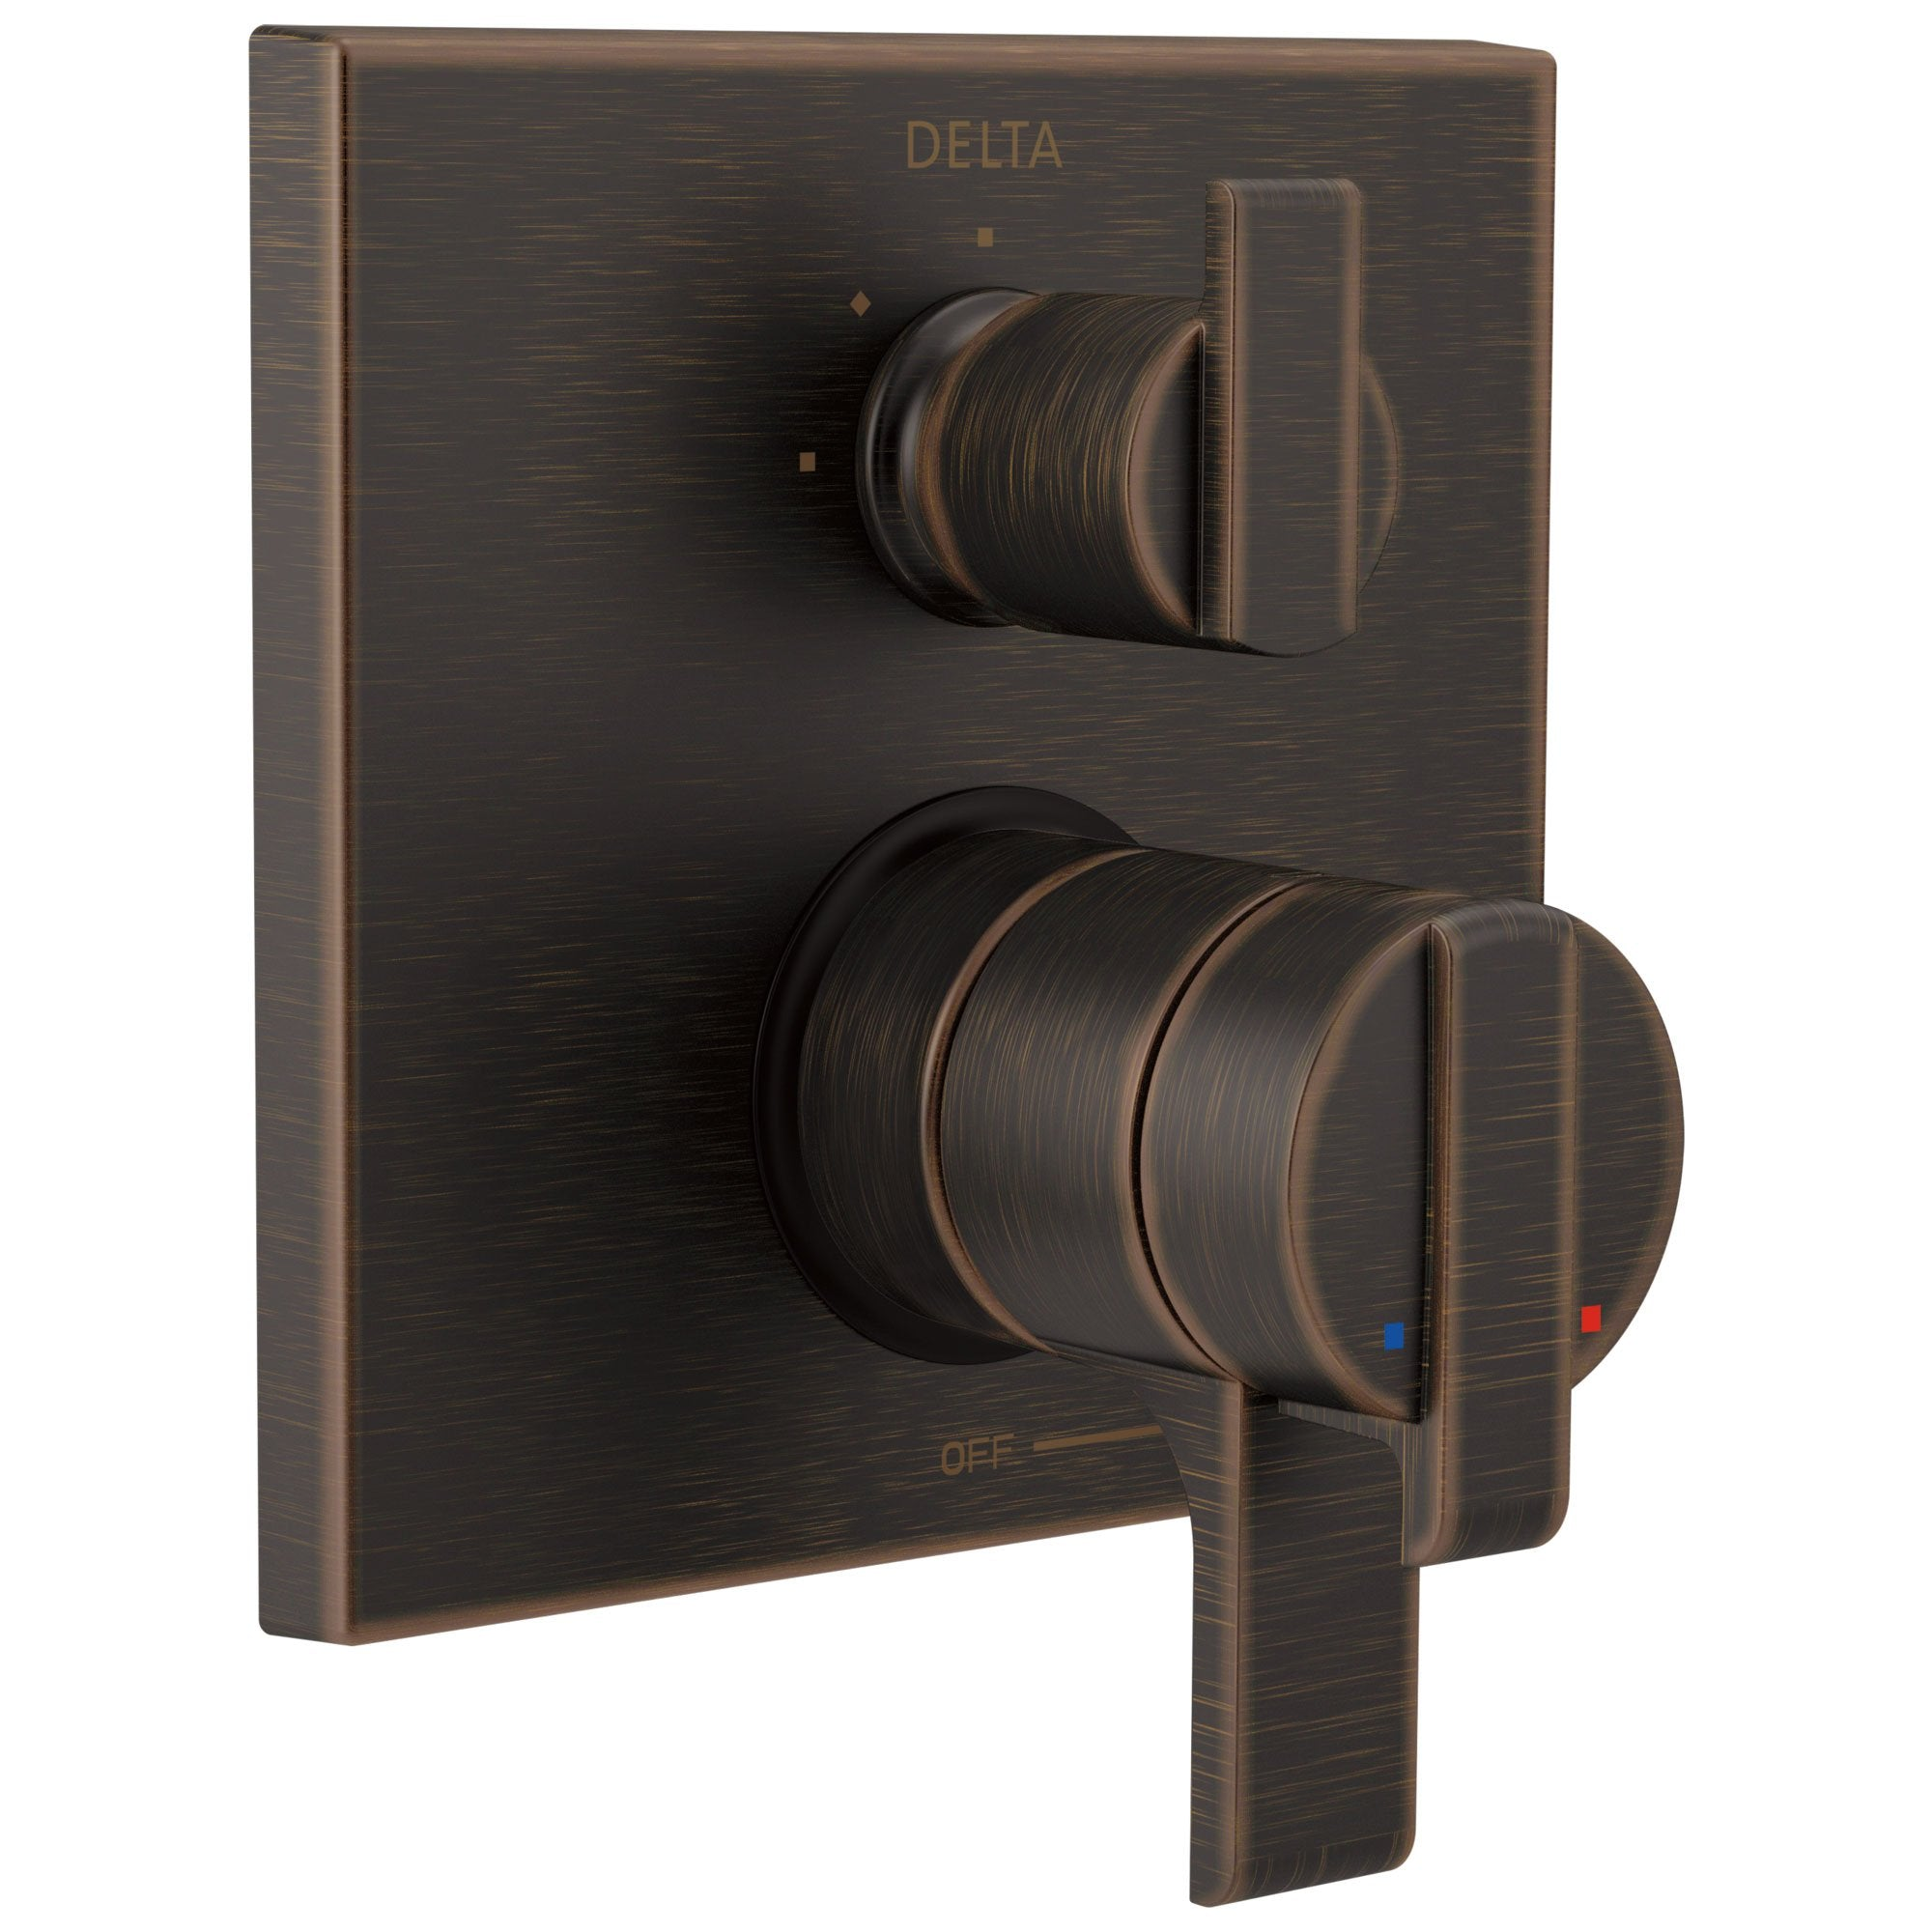 Delta Ara Venetian Bronze Modern Monitor 17 Shower Faucet Control Handle with 3-Setting Integrated Diverter Includes Trim Kit and Valve with Stops D2172V